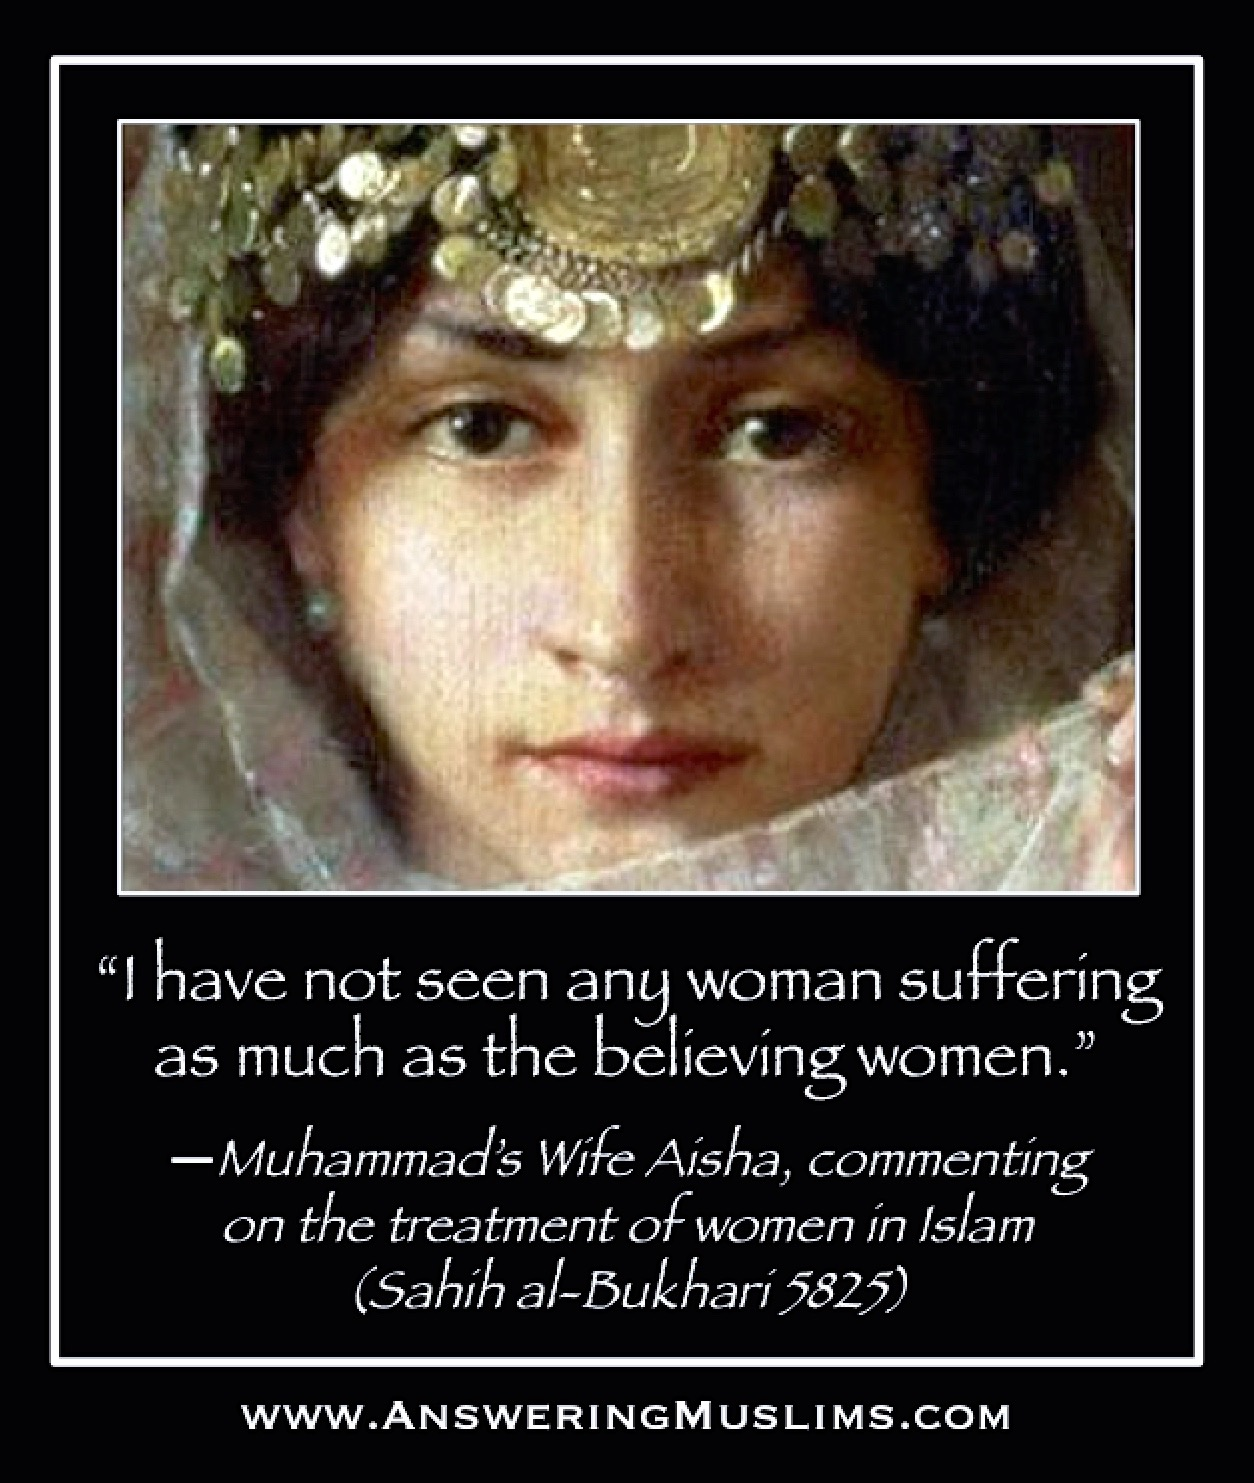 george west muslim single women Long-standing differences between western and eastern christians finally   george t dennis  the process leading to the definitive break was much more  complicated, and no single cause or  martin luther responded to islam with a  new military philosophy, fresh focus  the global scourge of violence against  women.